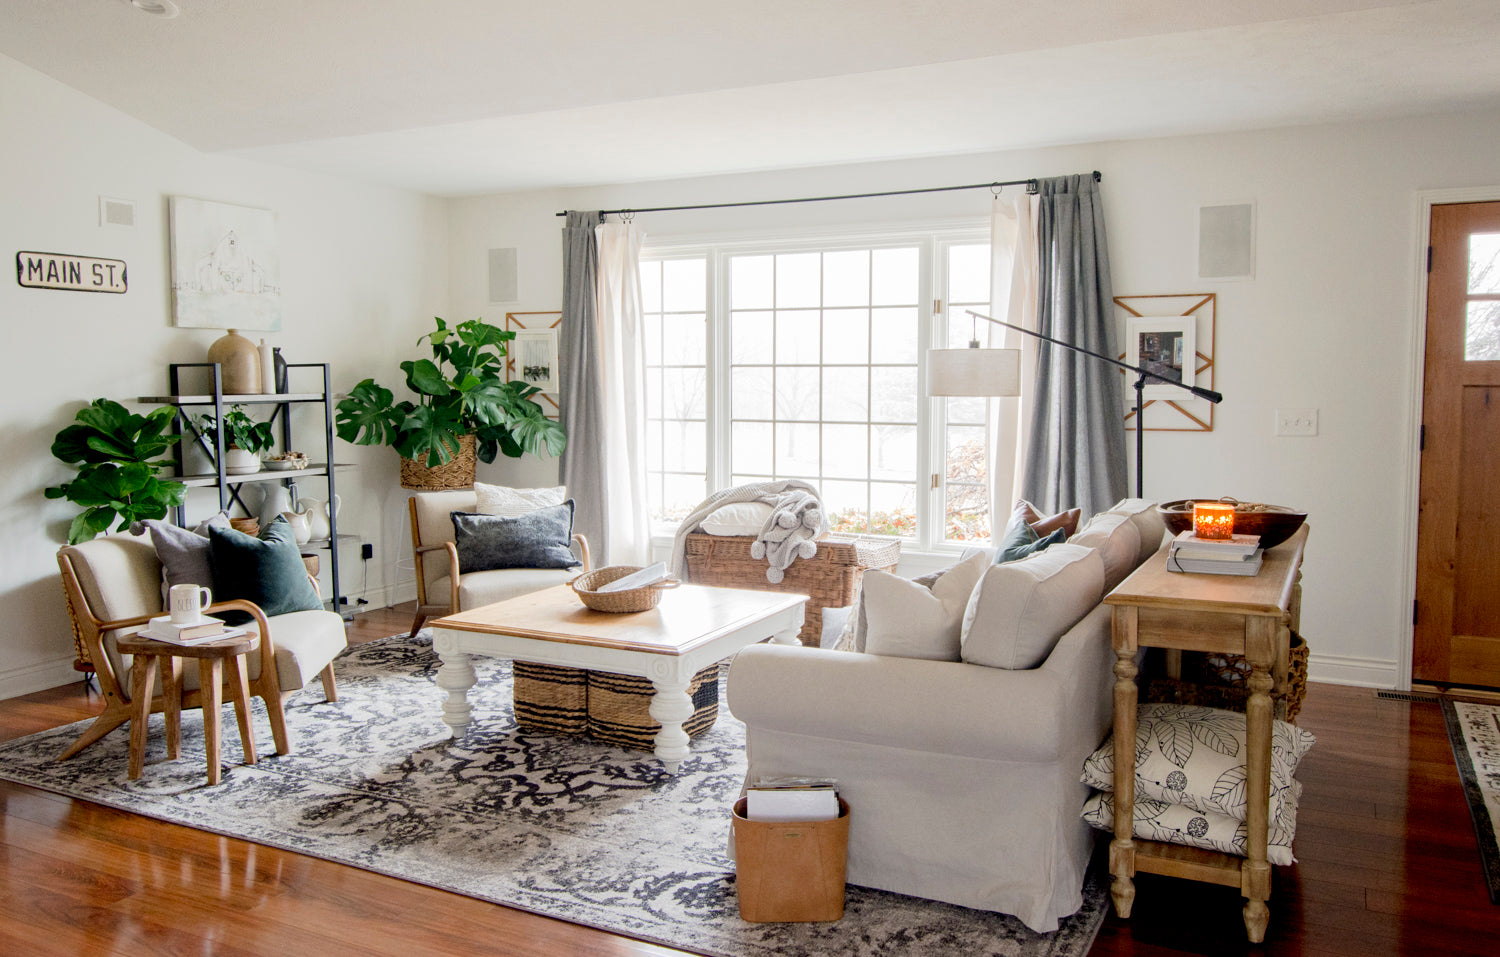 Cozy Home Look: Home decorating Ideas